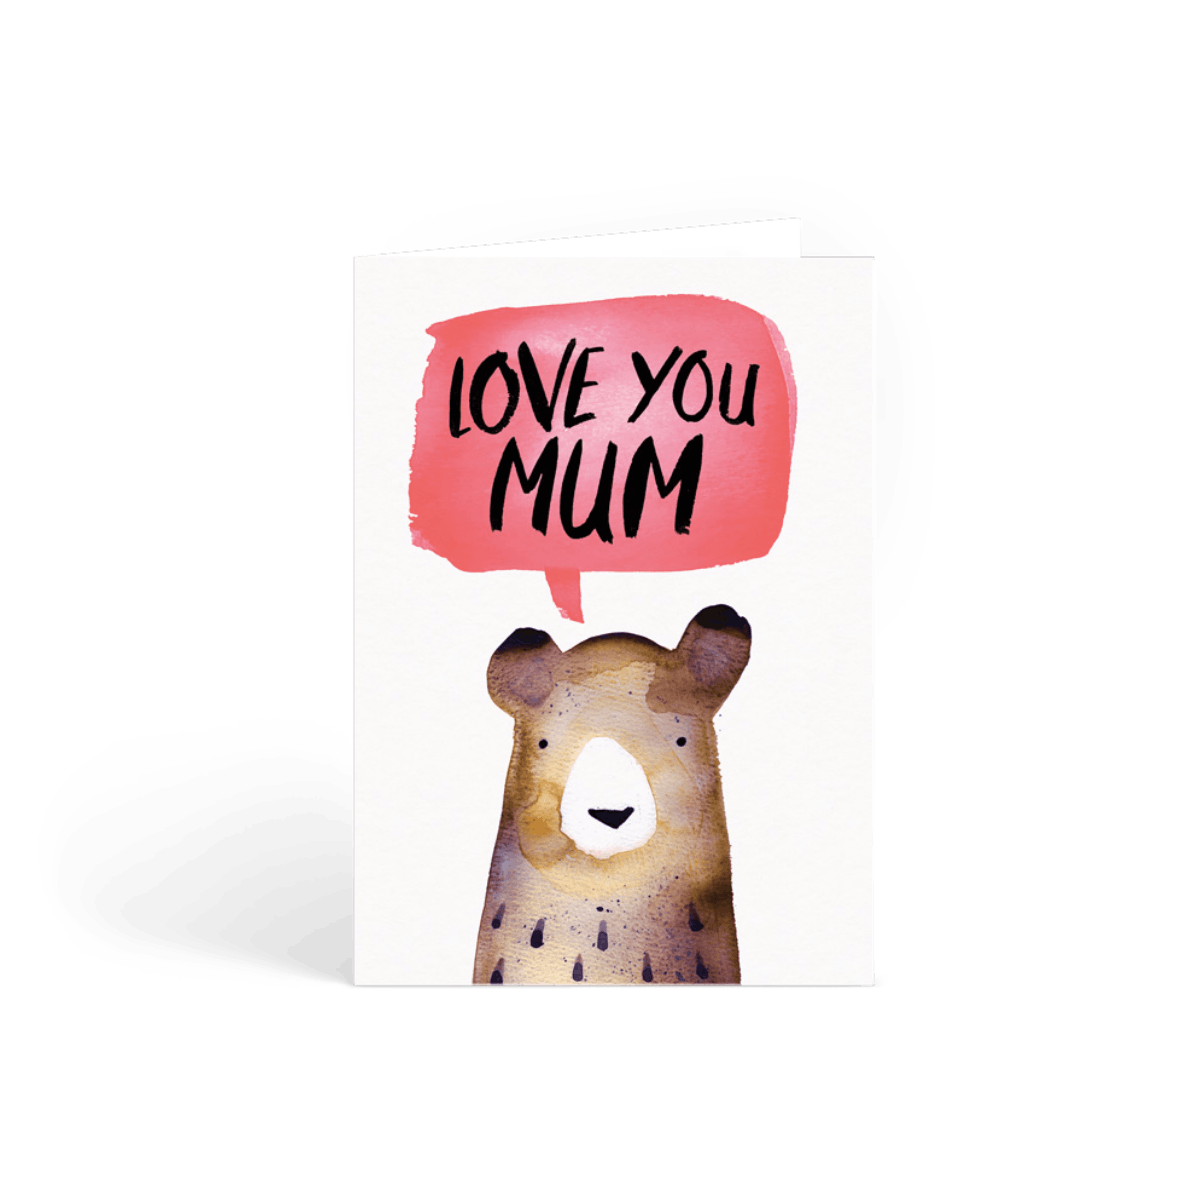 Https%3a%2f%2fwww.papier.com%2fproduct image%2f23879%2f2%2flove you bear 5974 front 1498210941.png?ixlib=rb 1.1